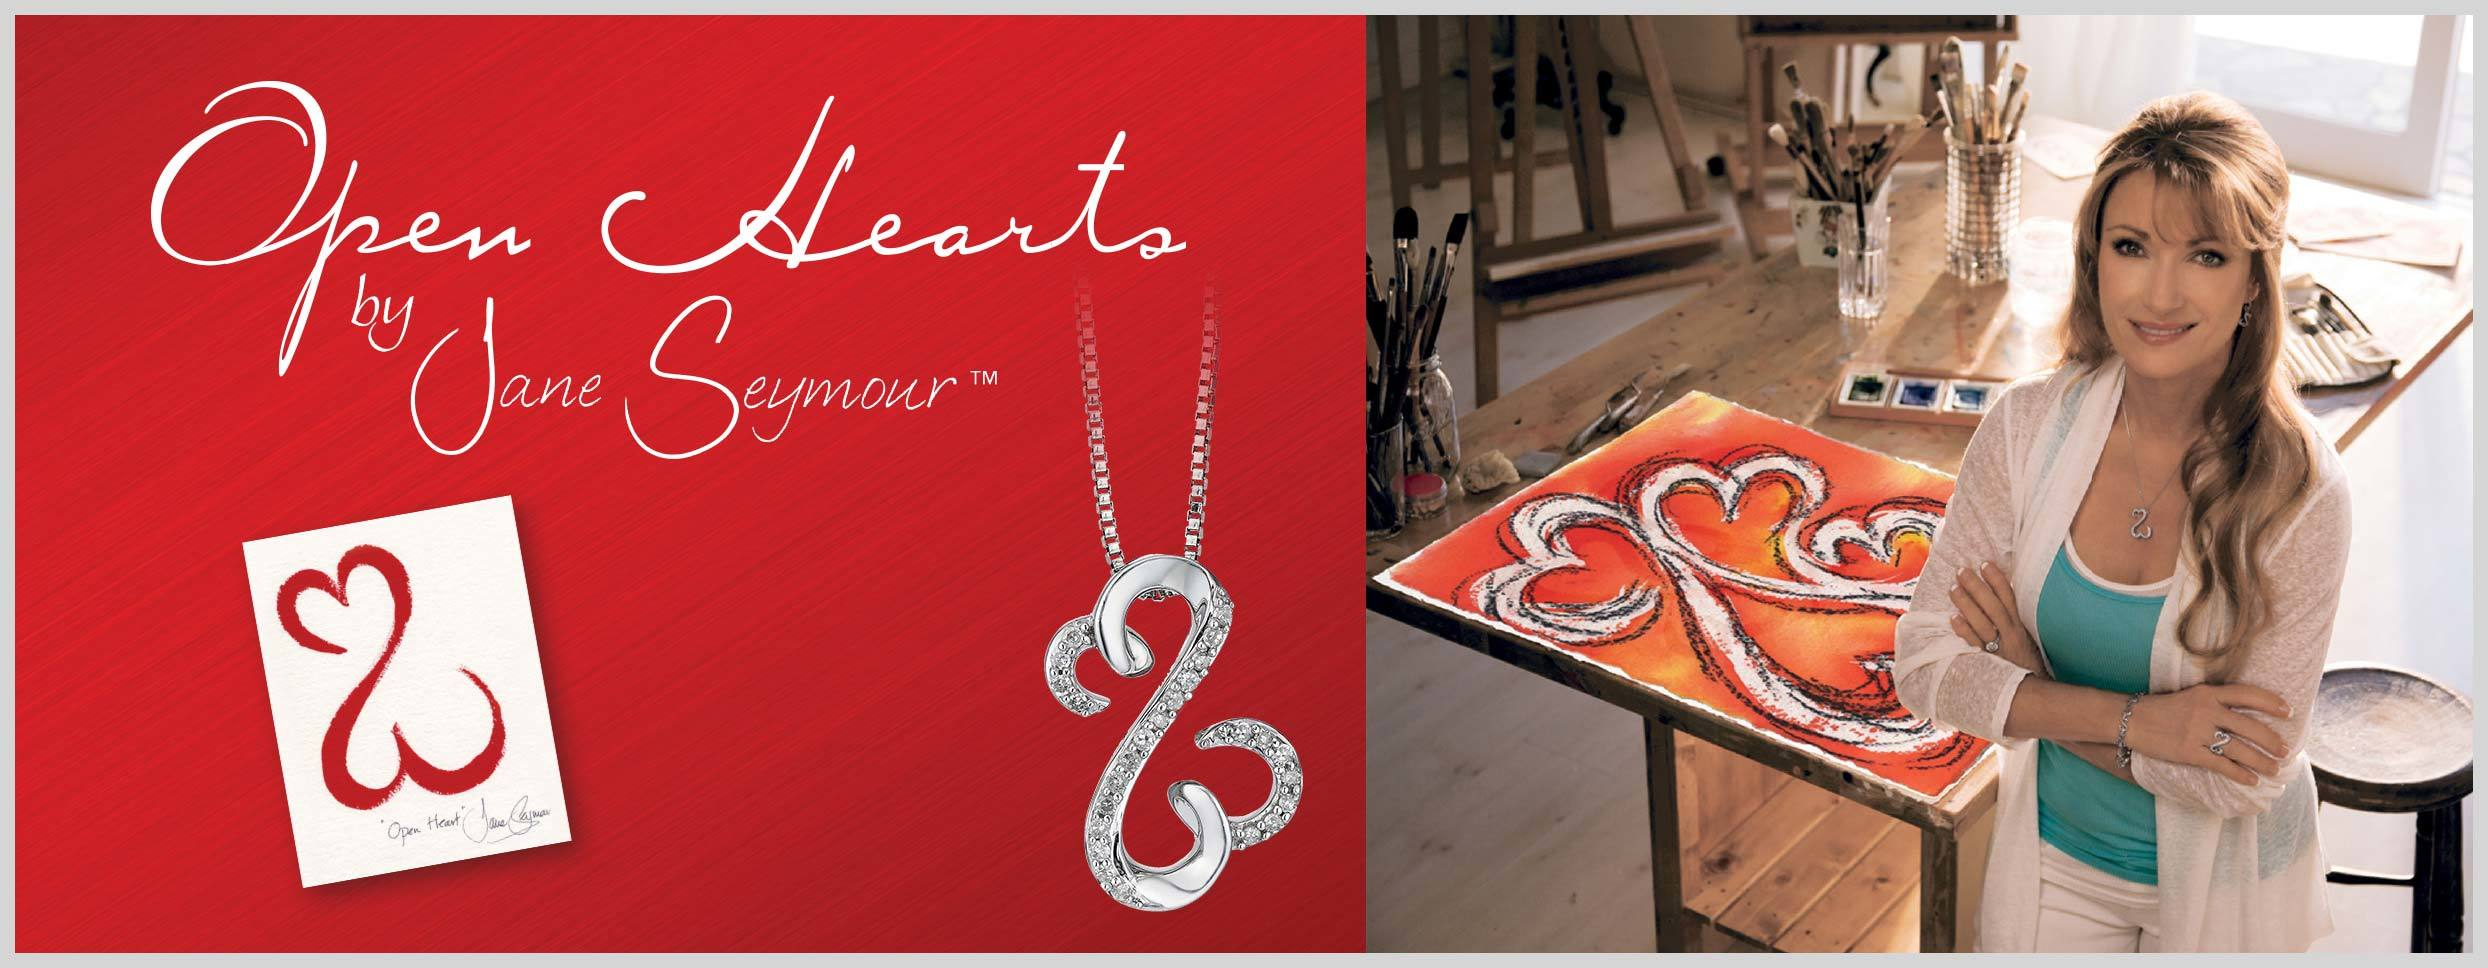 Open Hearts by Jane Seymour - Exclusive to H Samuel